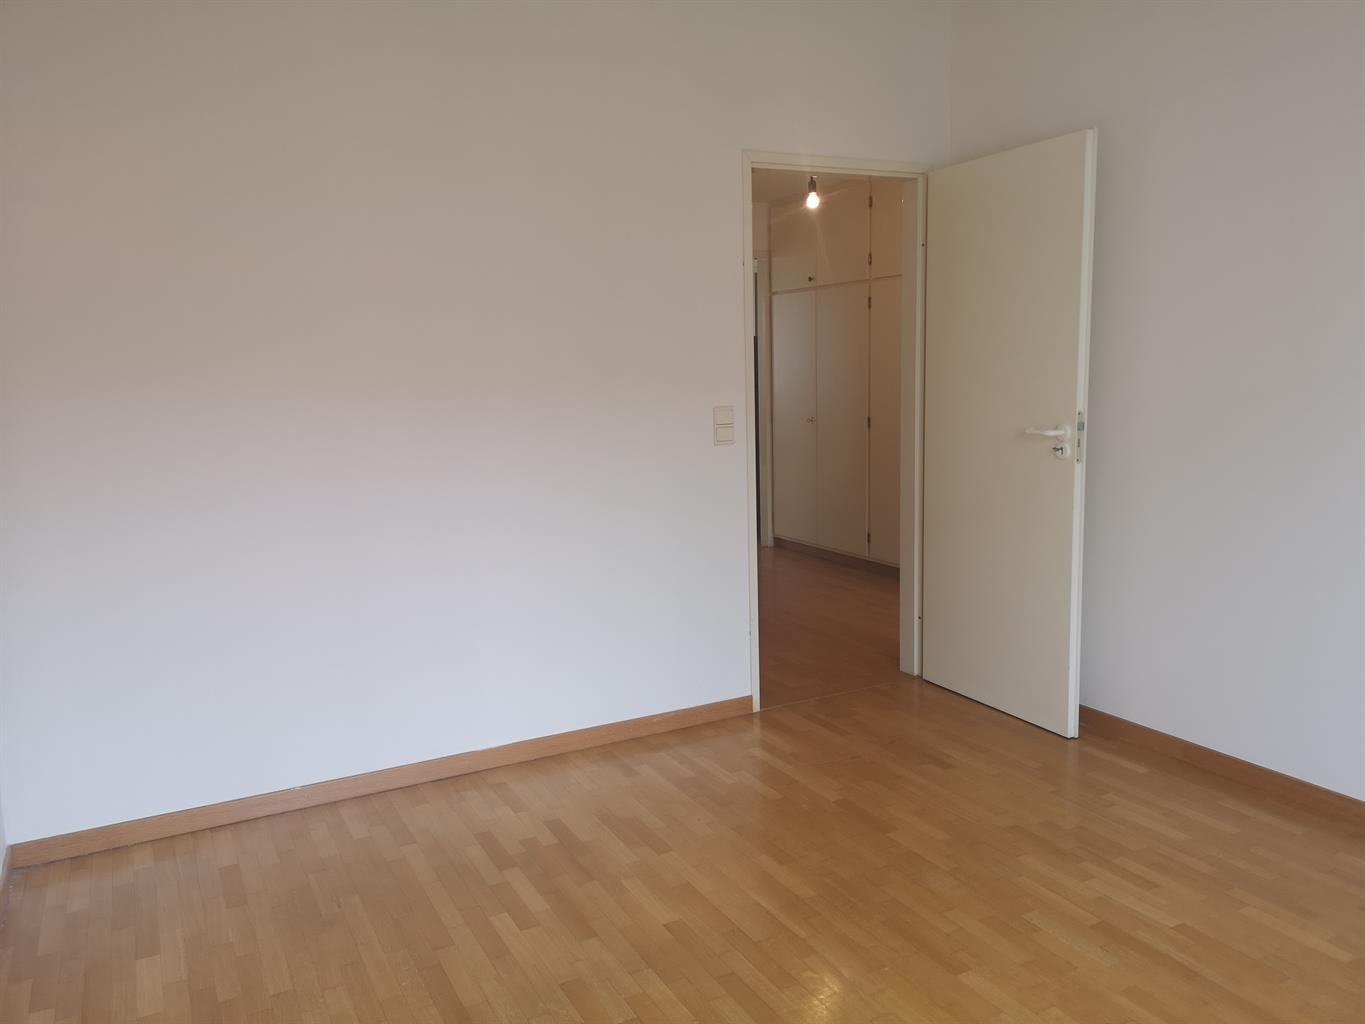 Appartement - Brussel - #4307721-5